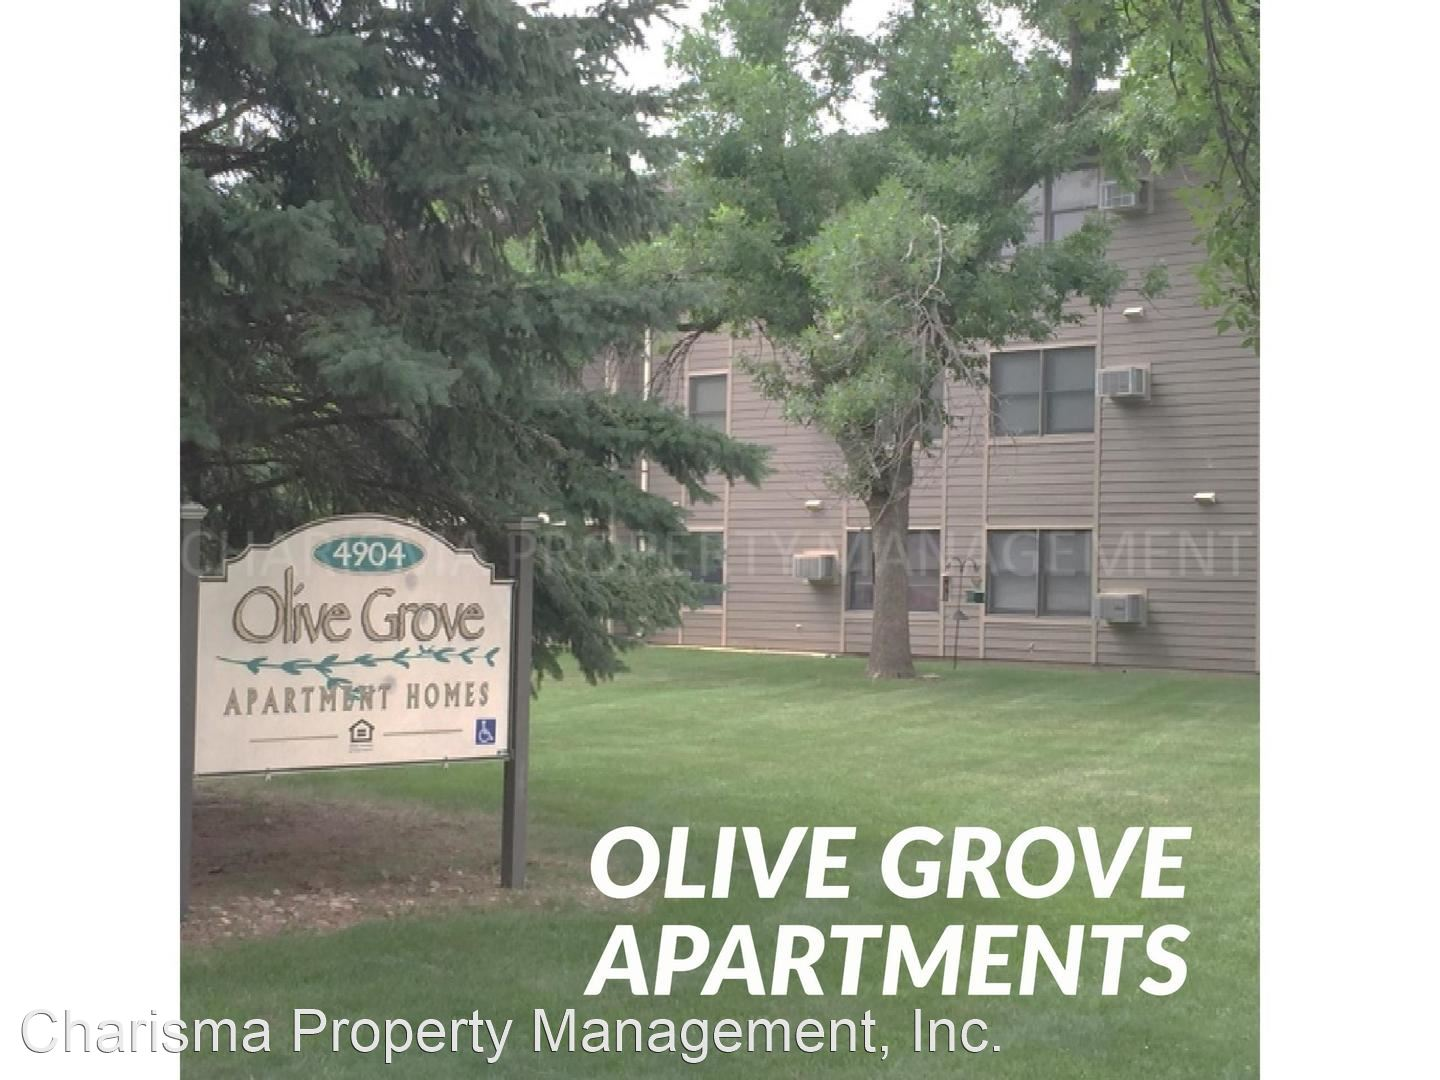 Olive Grove Apartments 4904 S Kirkwood Circle